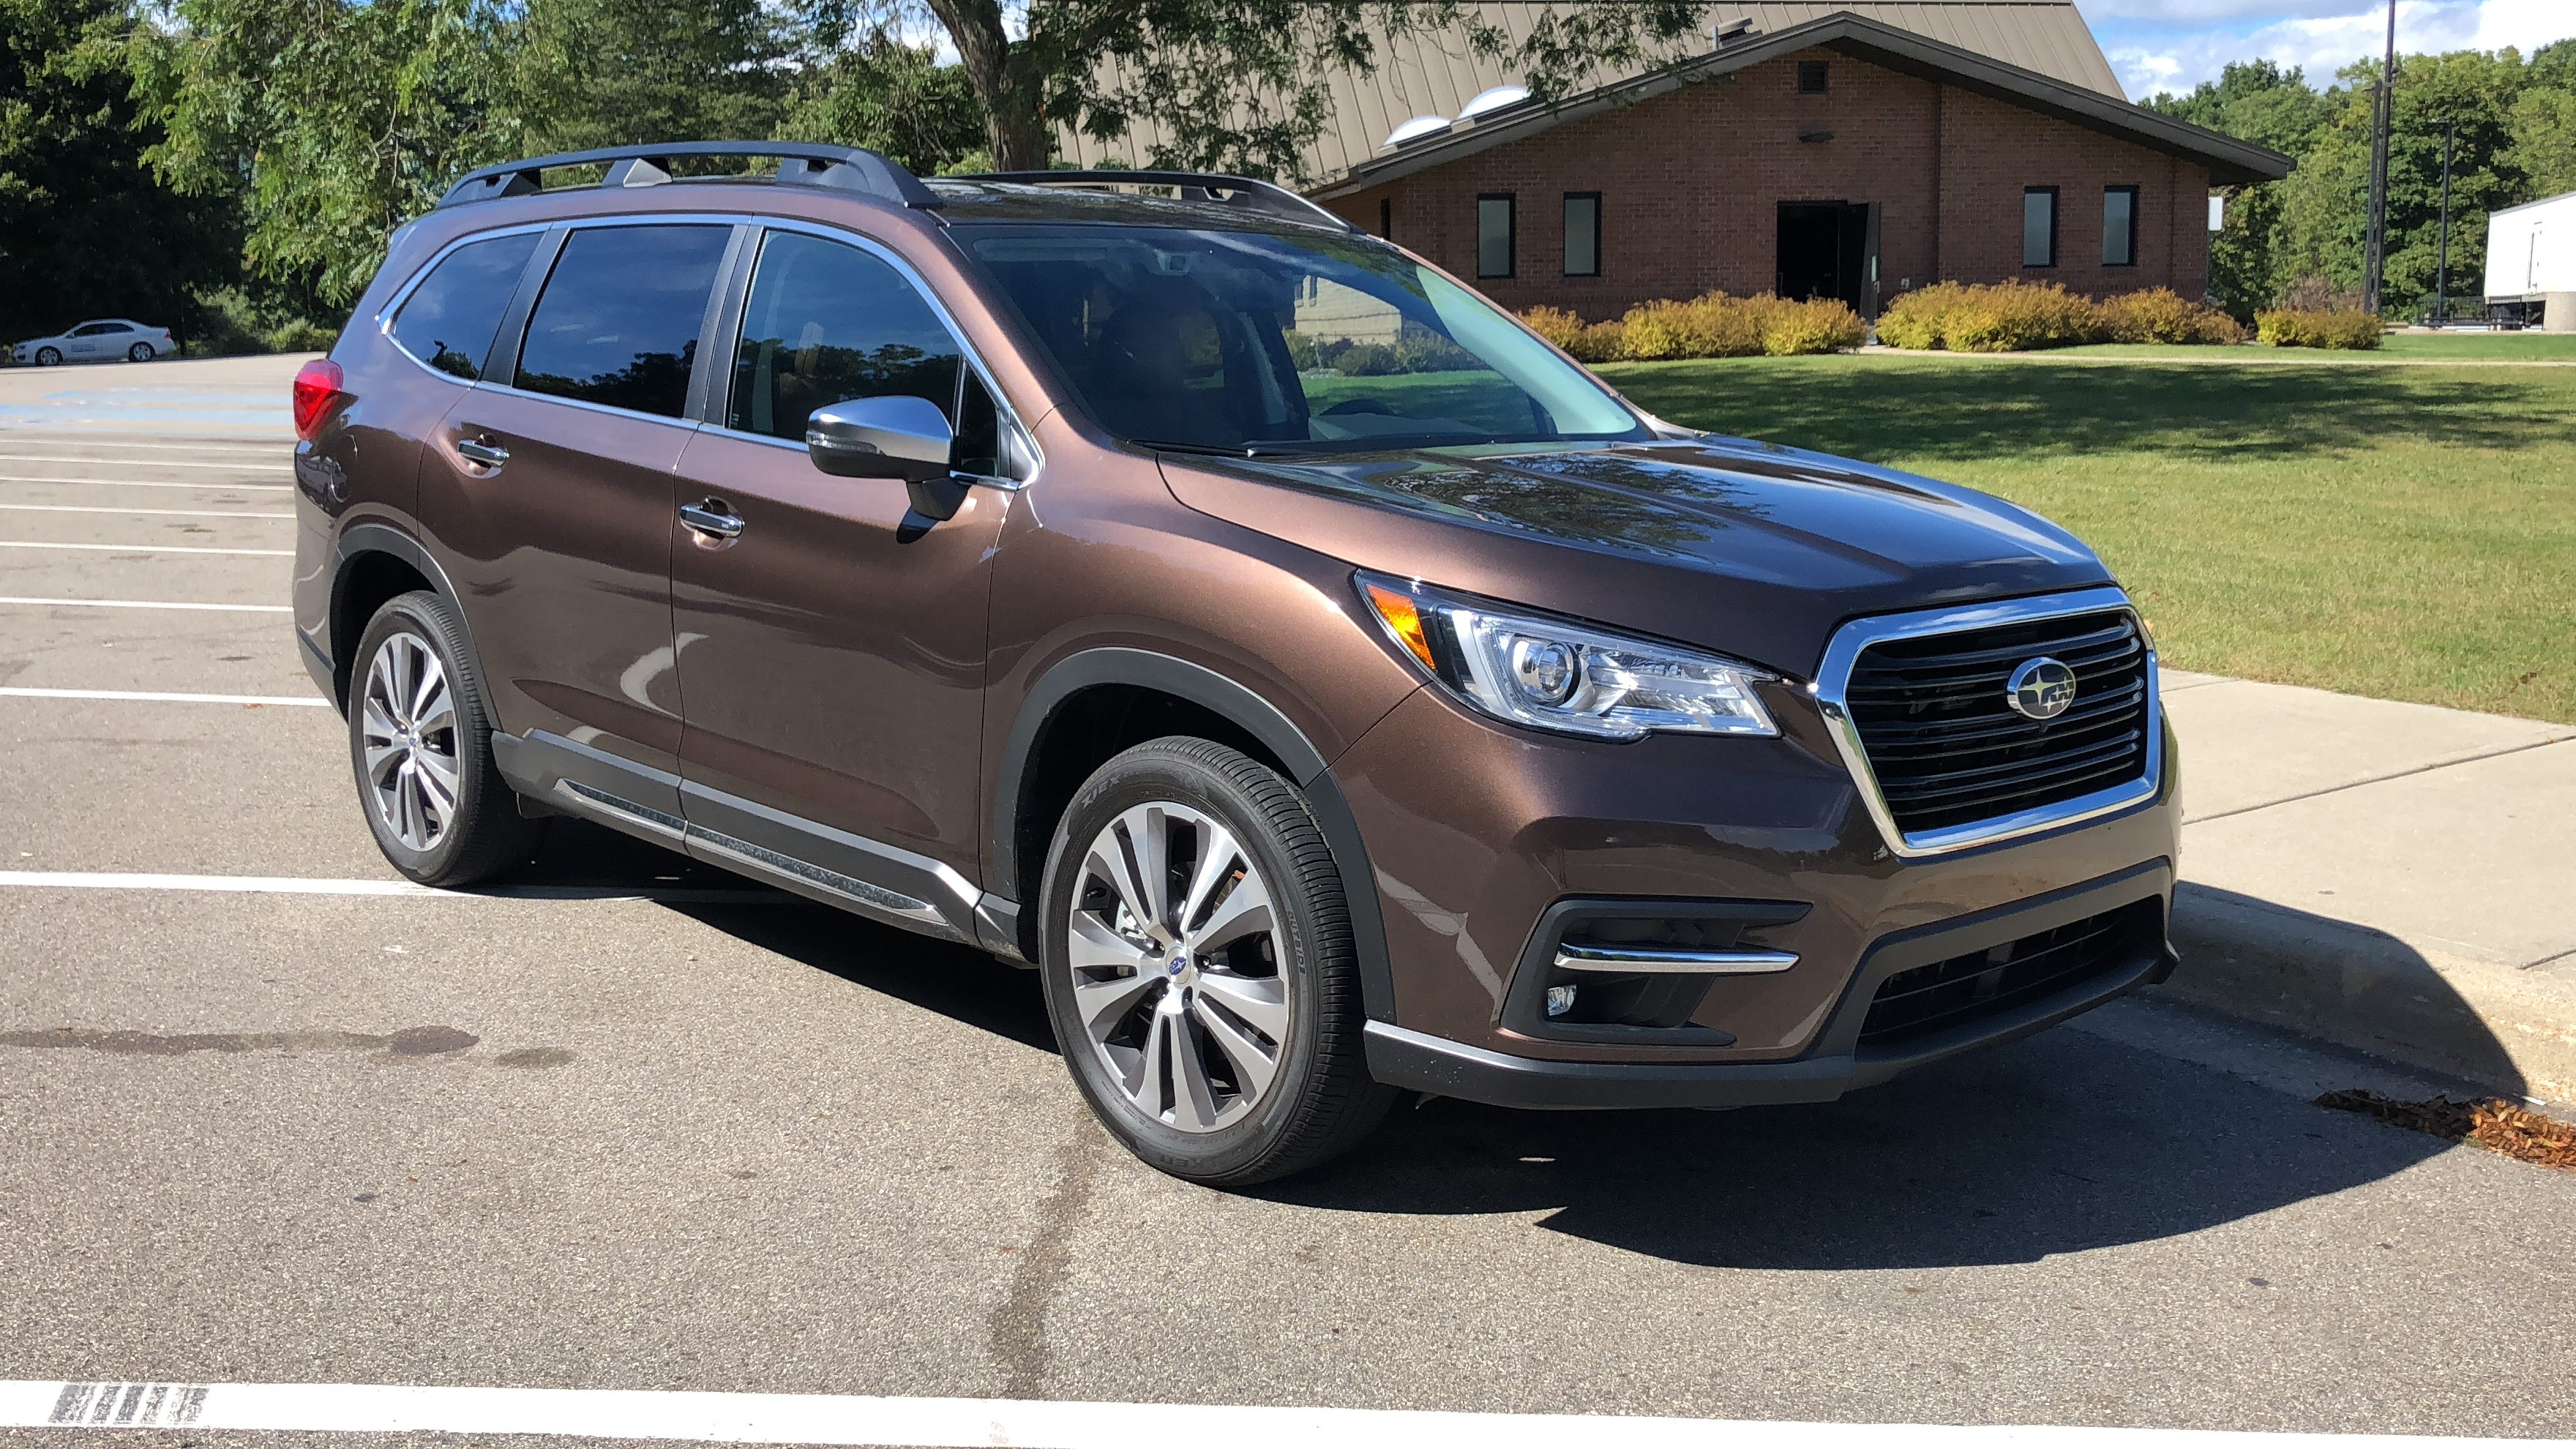 review 2019 ascent is subaru families have been waiting for rh freep com